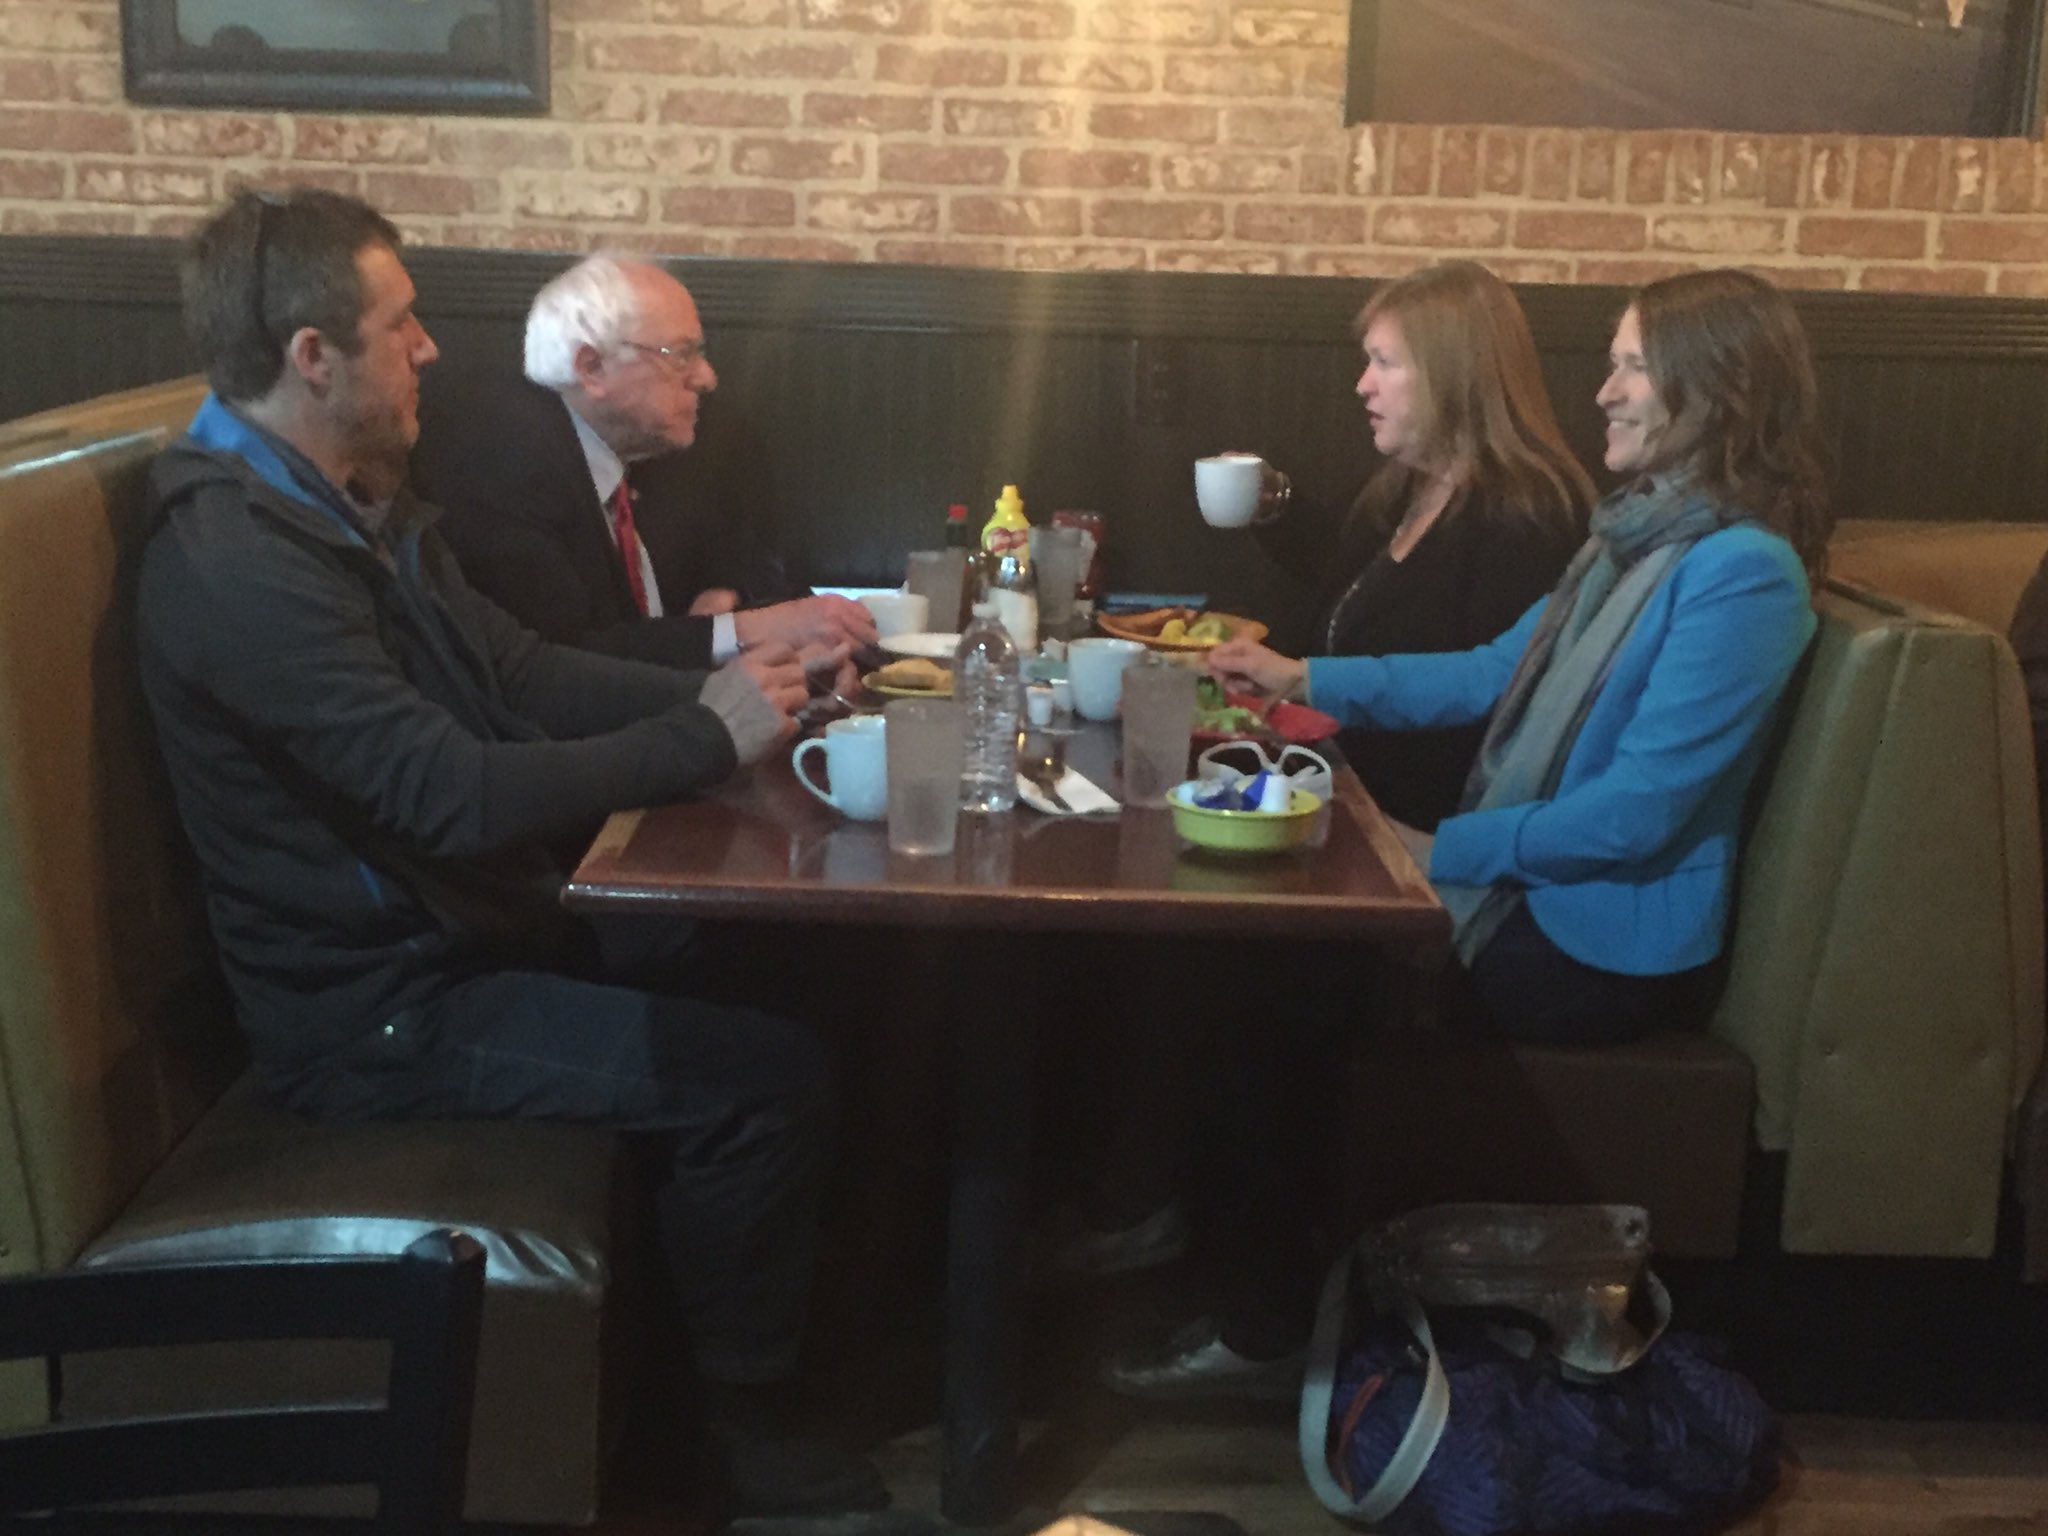 Coffee cup family restaurant - Berniesanders Getting Breakfast W His Wife Jane And Daughter Heather At Coffee Mug Family Restaurant In Elko Nv Https T Co Spy1bkki0a